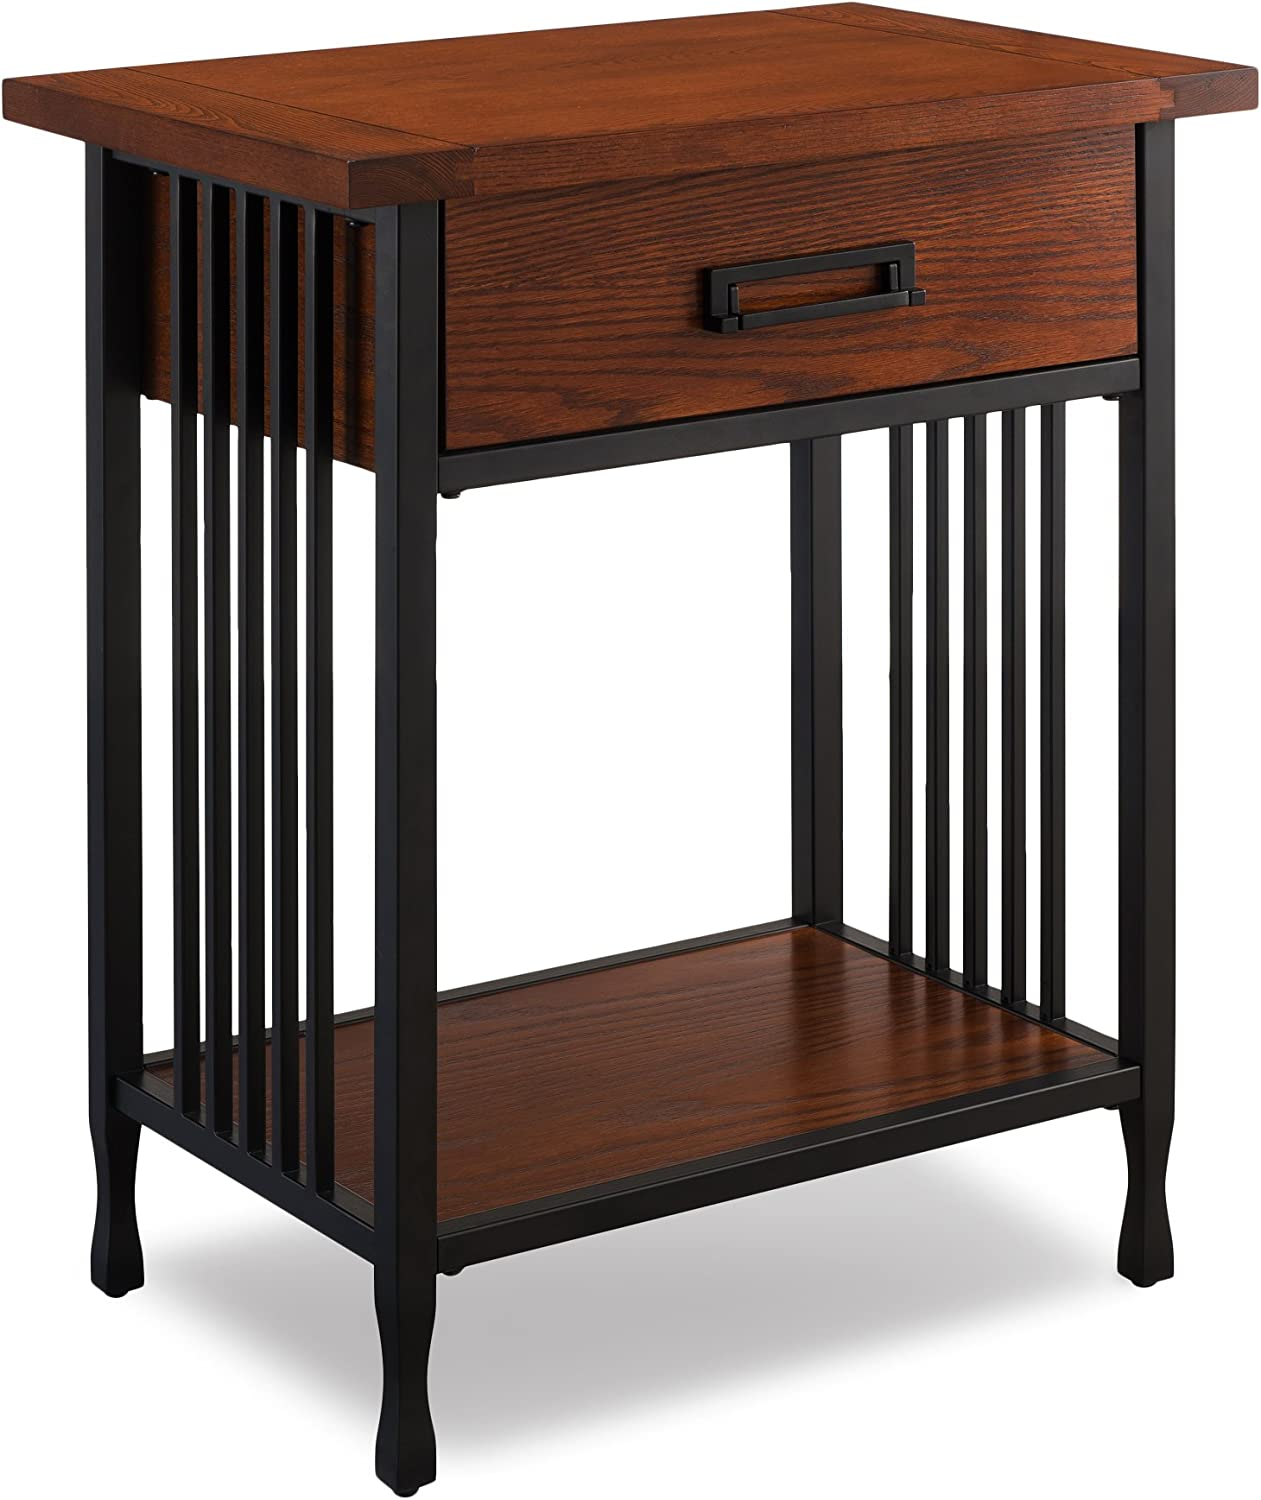 Leick Ironcraft Night Stand